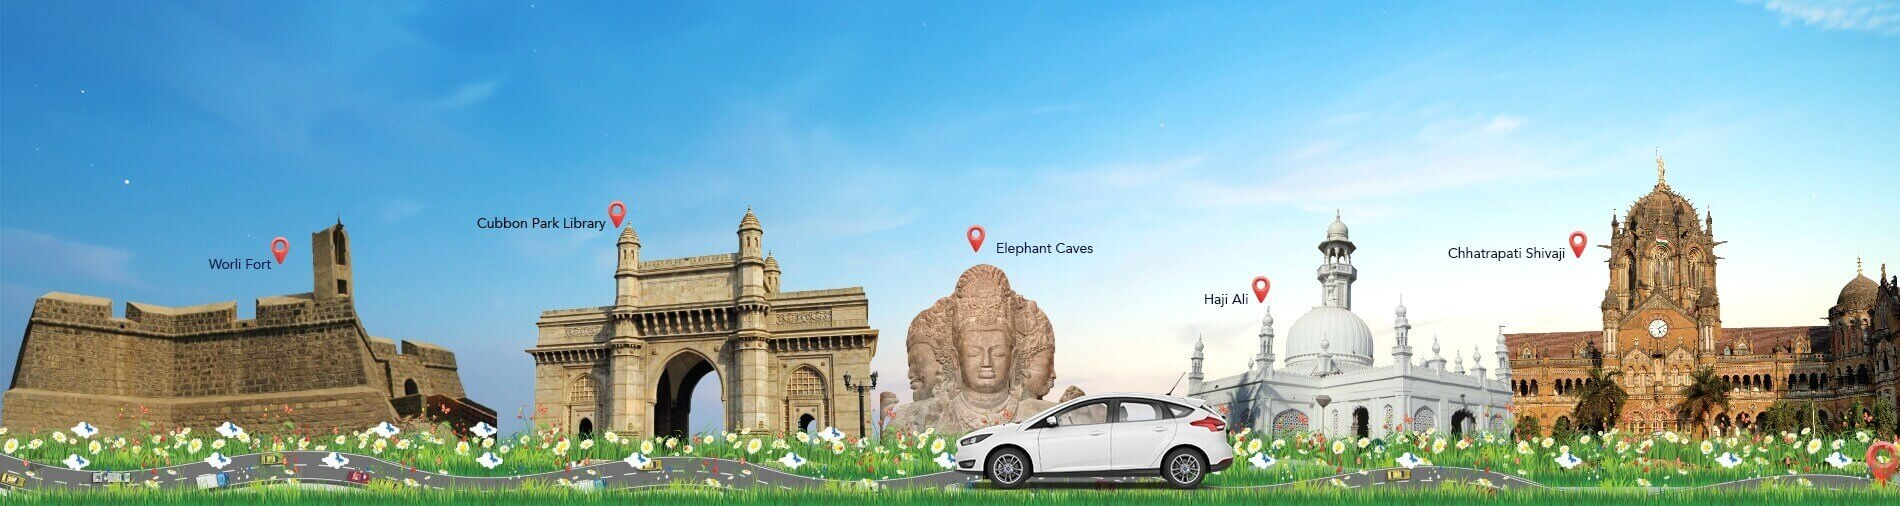 Self Drive Car Rental In Mumbai Car Hire In Mumbai Luxury Car